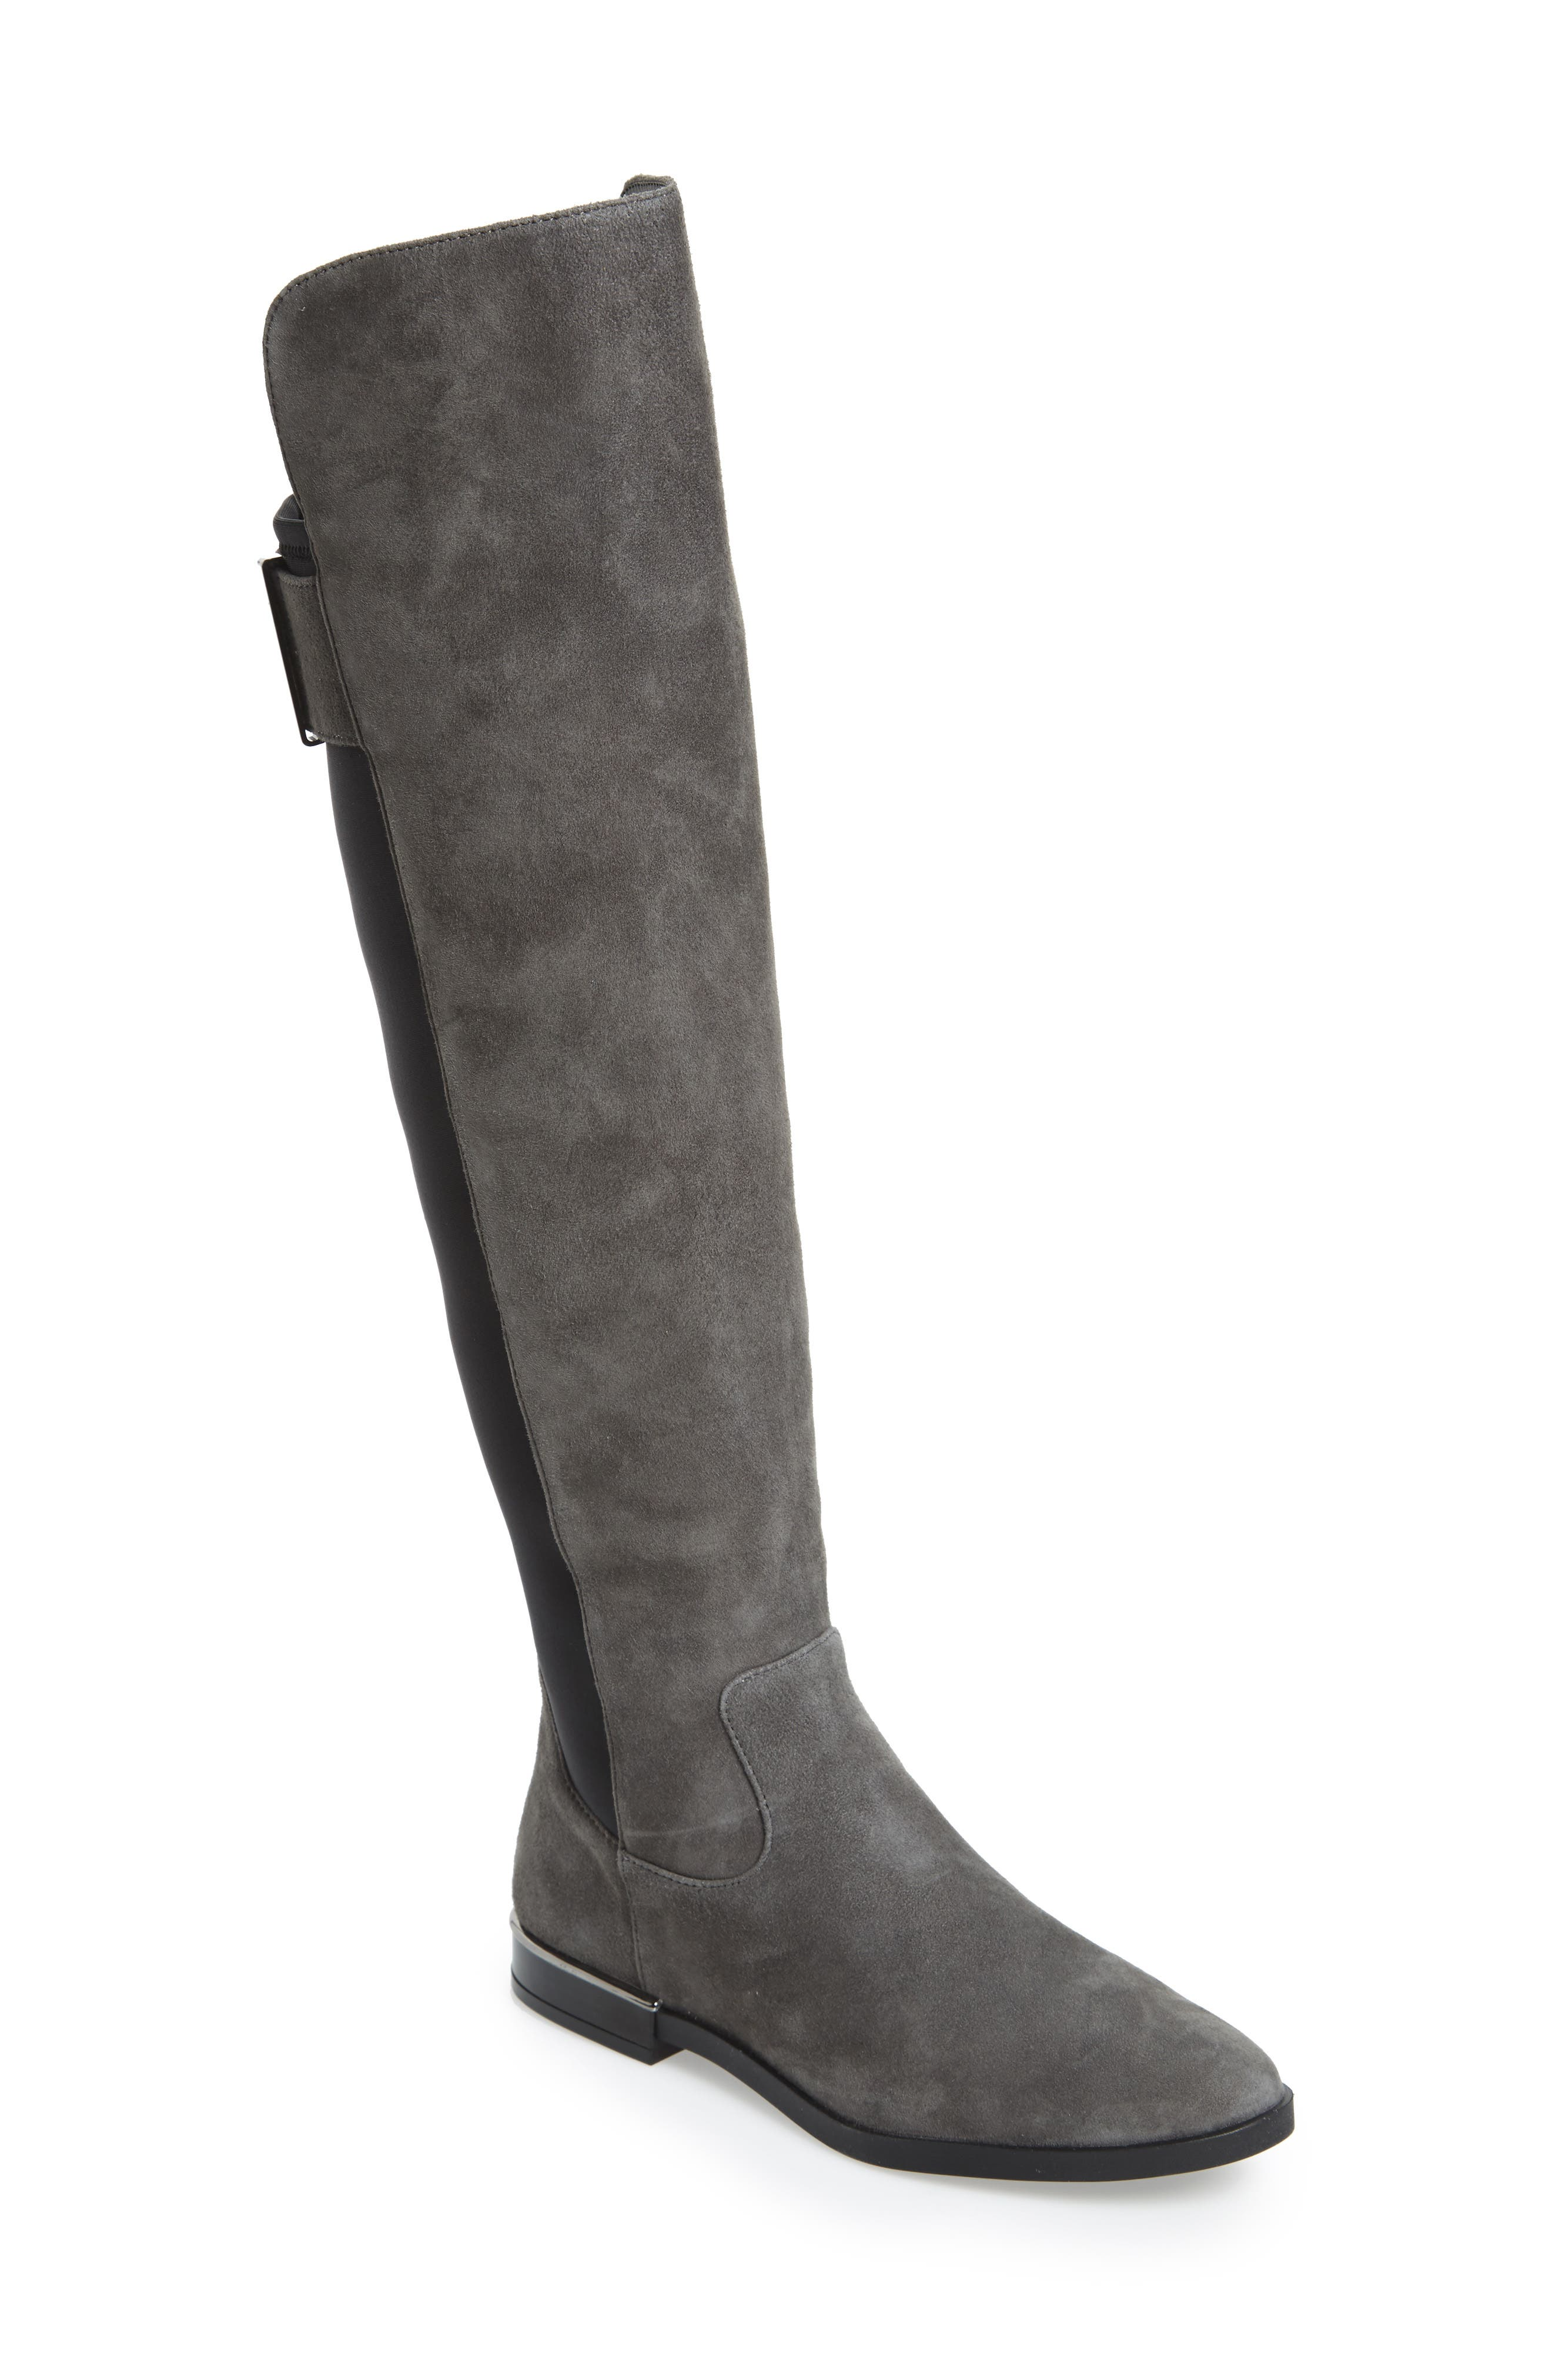 Priya Over the Knee Boot,                         Main,                         color, Slate/ Black Suede